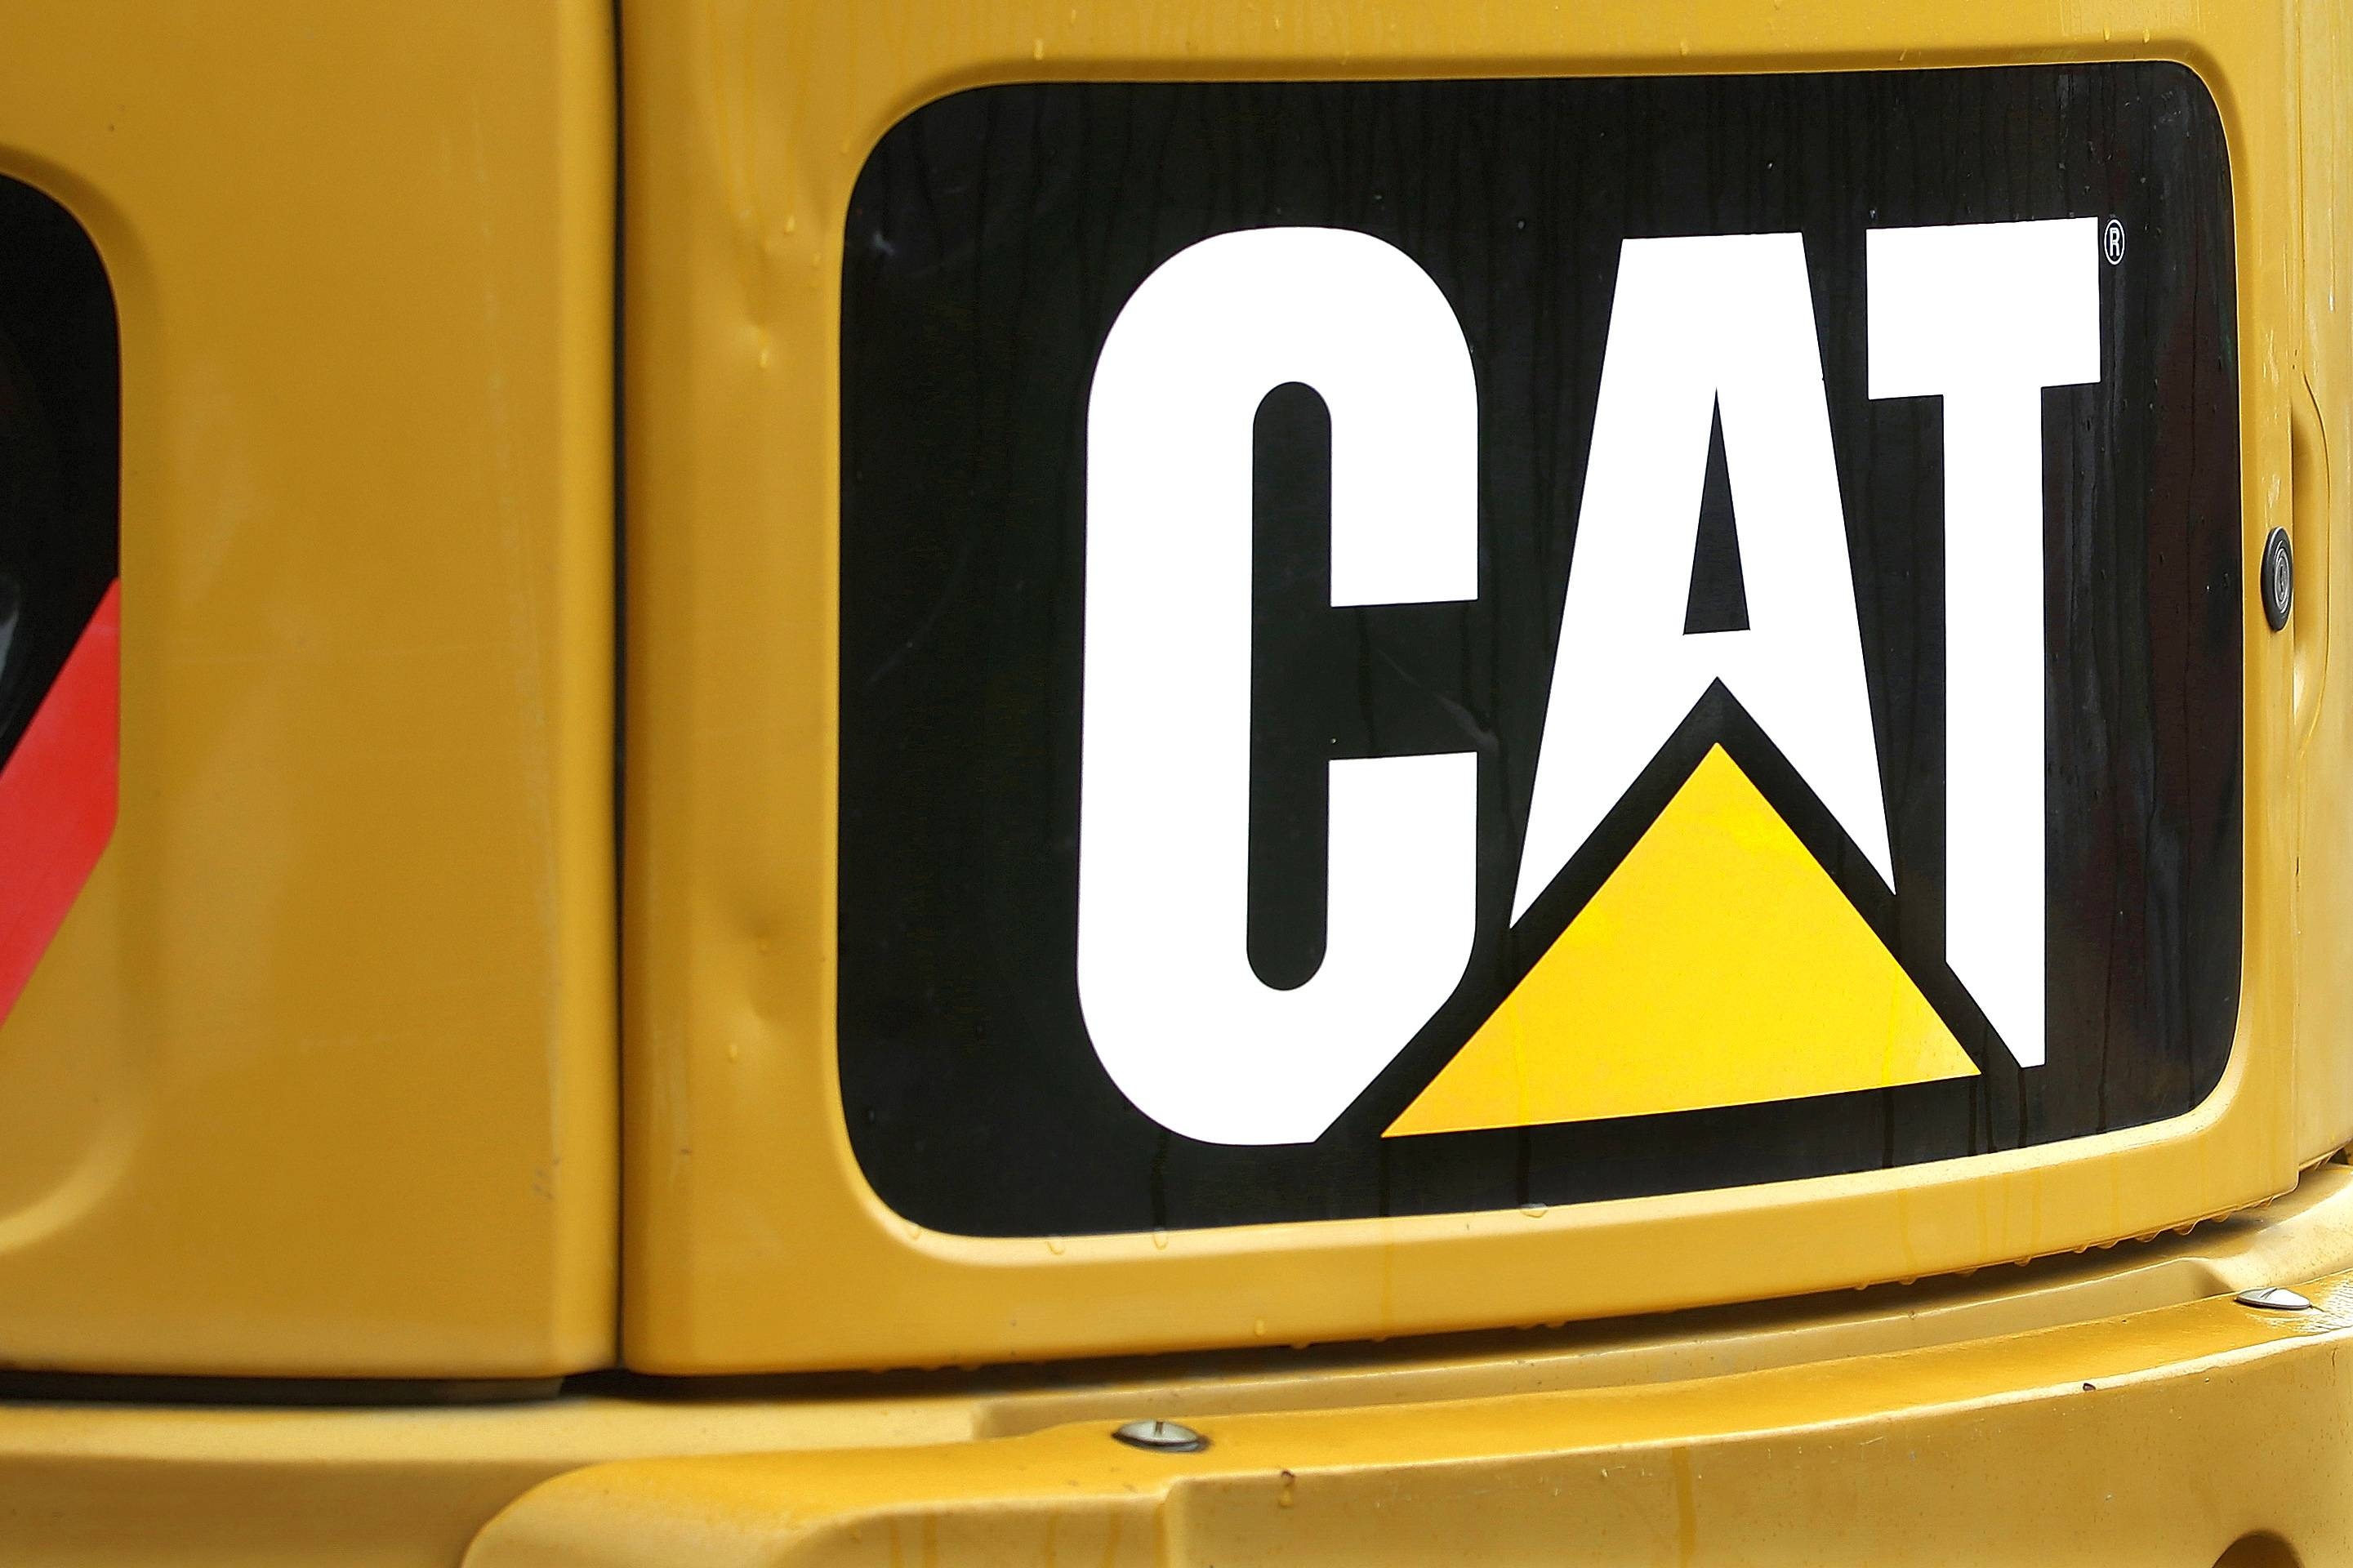 Caterpillar's second-quarter net income rose 4.1 percent even as revenue slipped.